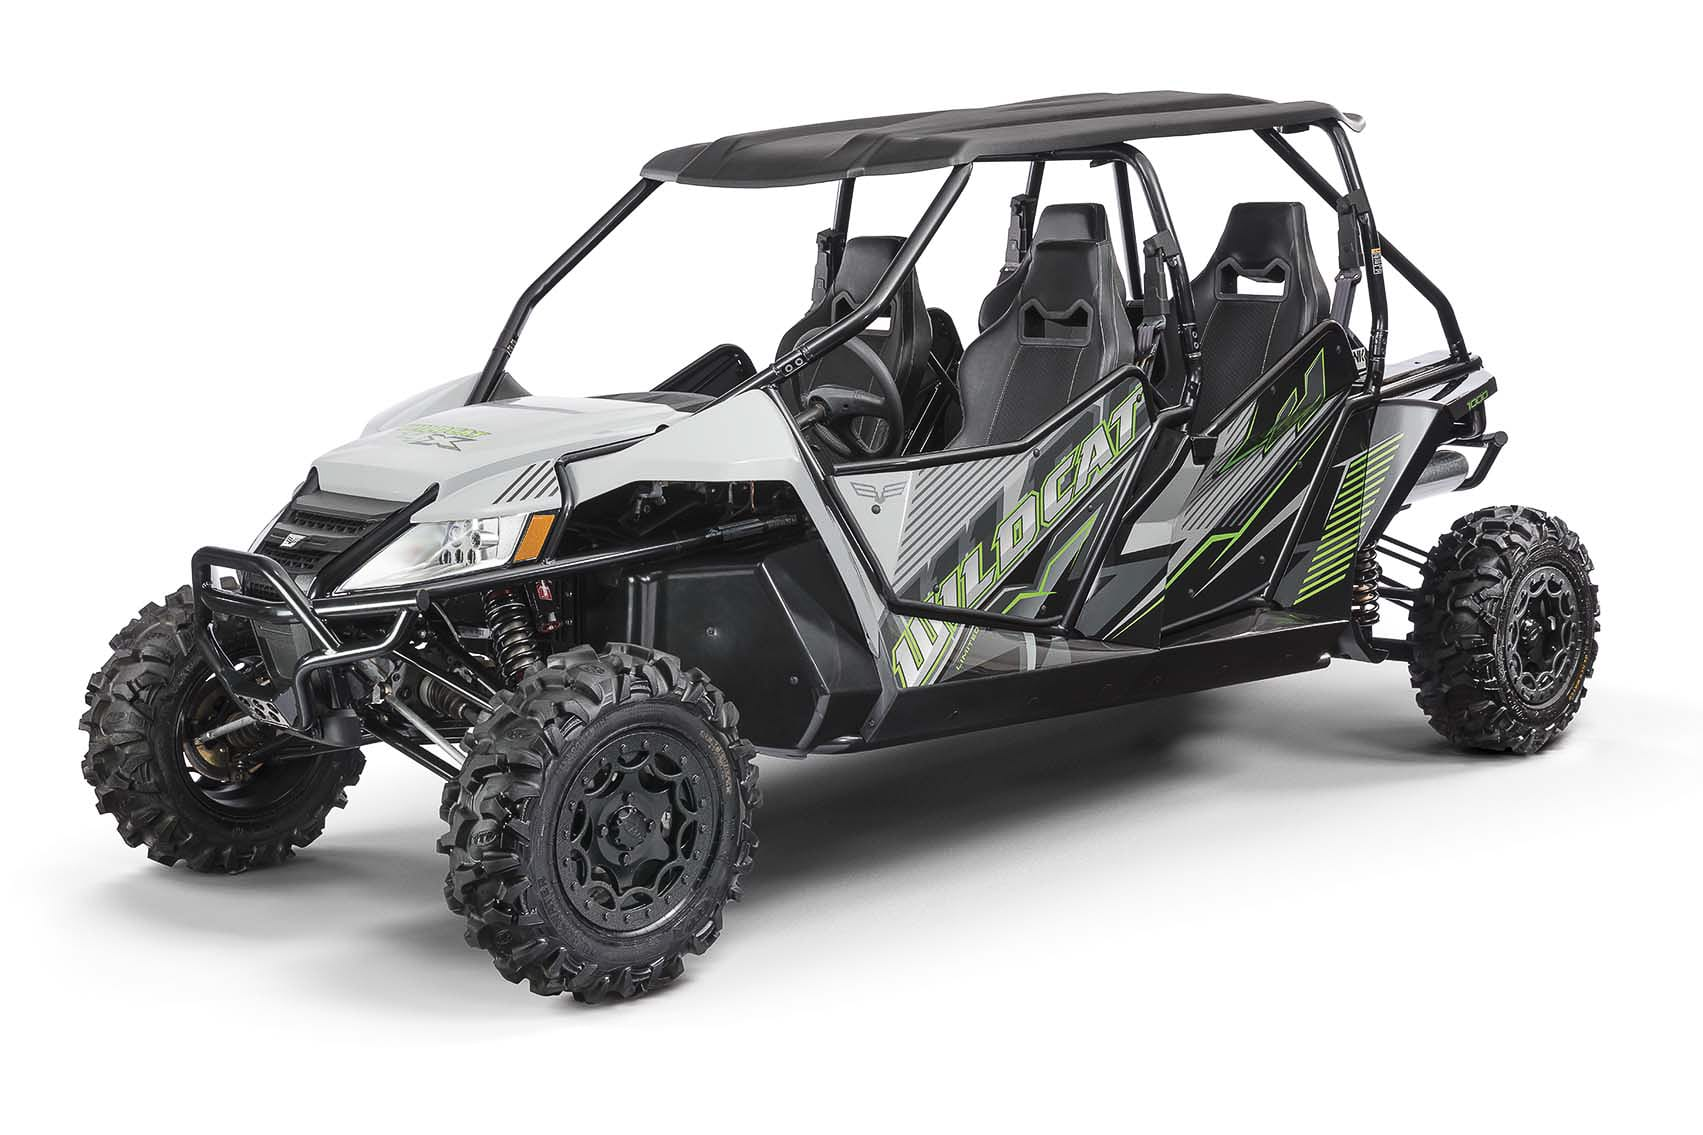 Super Atv 10 Inch Lift Kit Polaris Rzr Turbo 1000 additionally 302148862488 further Tusk Terrabite Tires together with Itp Releases Game Changing Cryptid Mud Tire as well 2018 Textron Off Road Wildcat 4x Limited. on arctic cat mud on tires